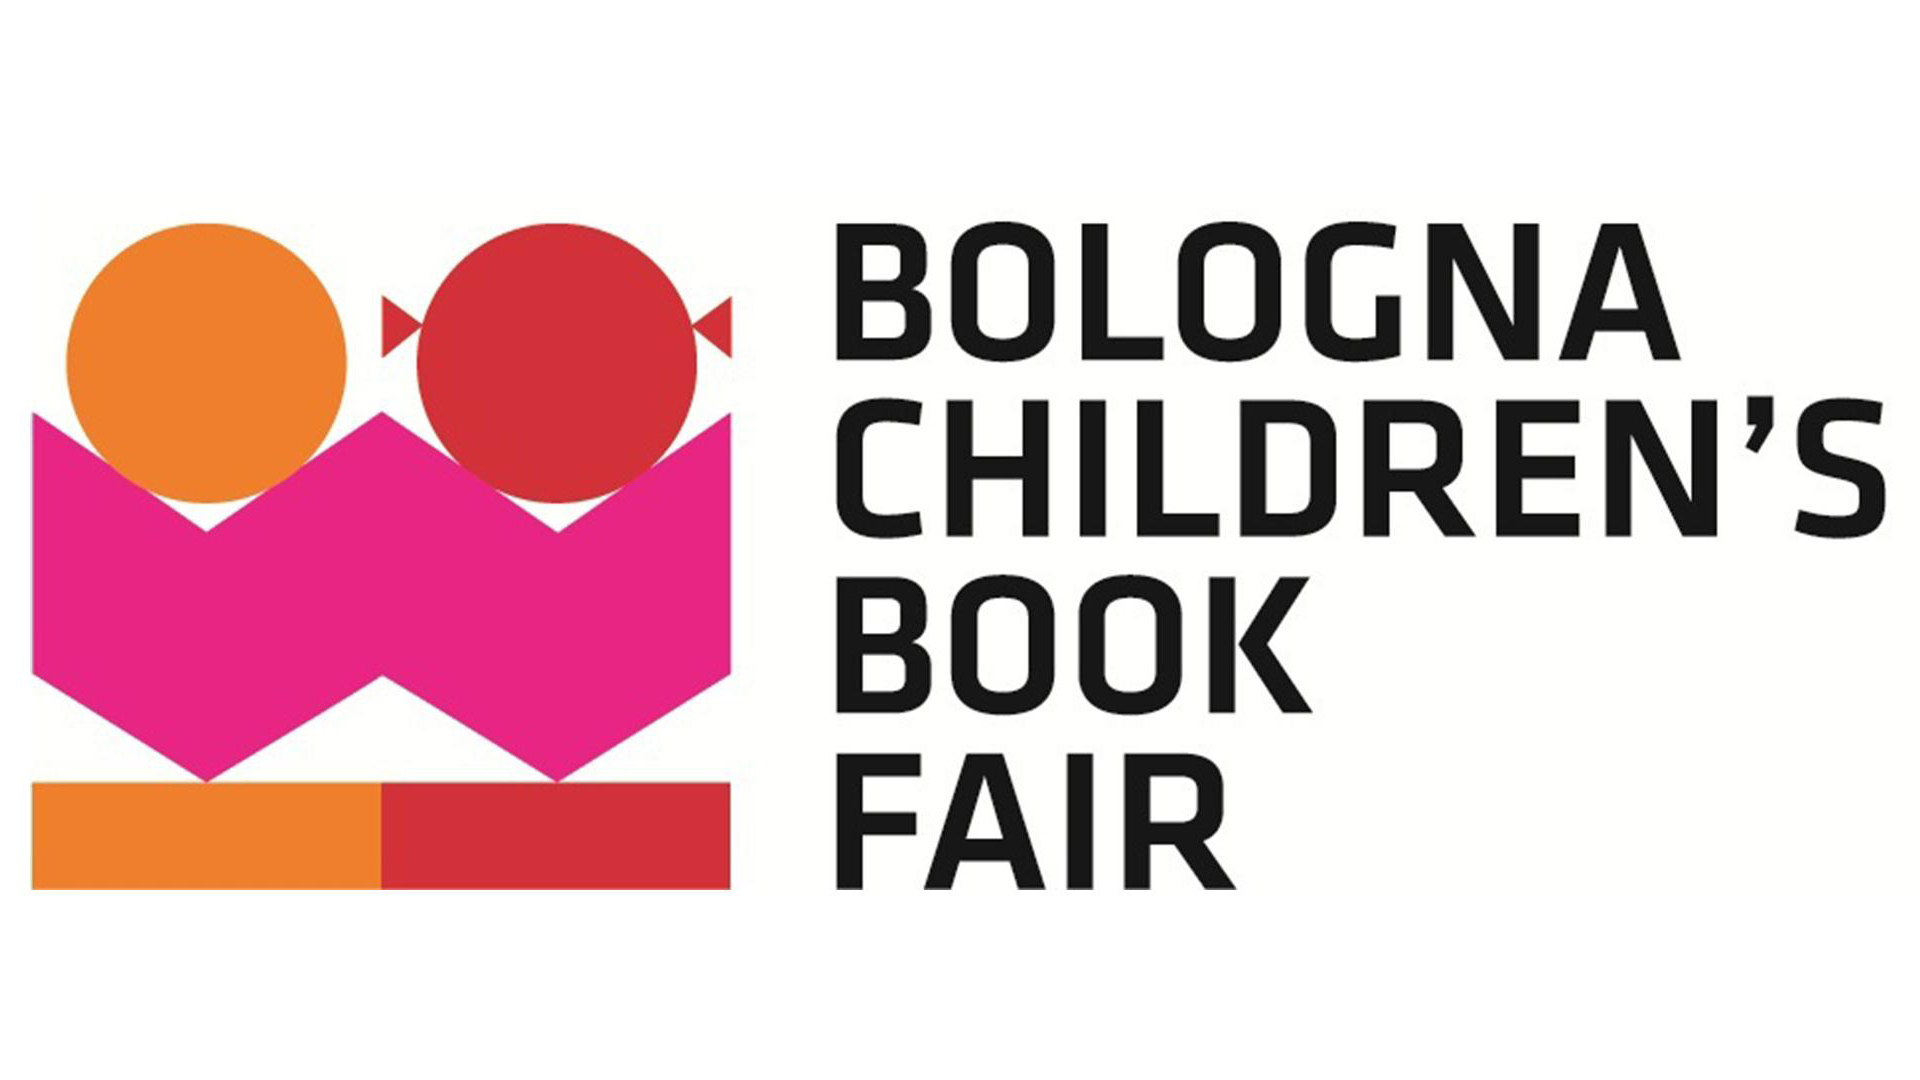 Cancellata la Bologna Children's Book Fair thumbnail